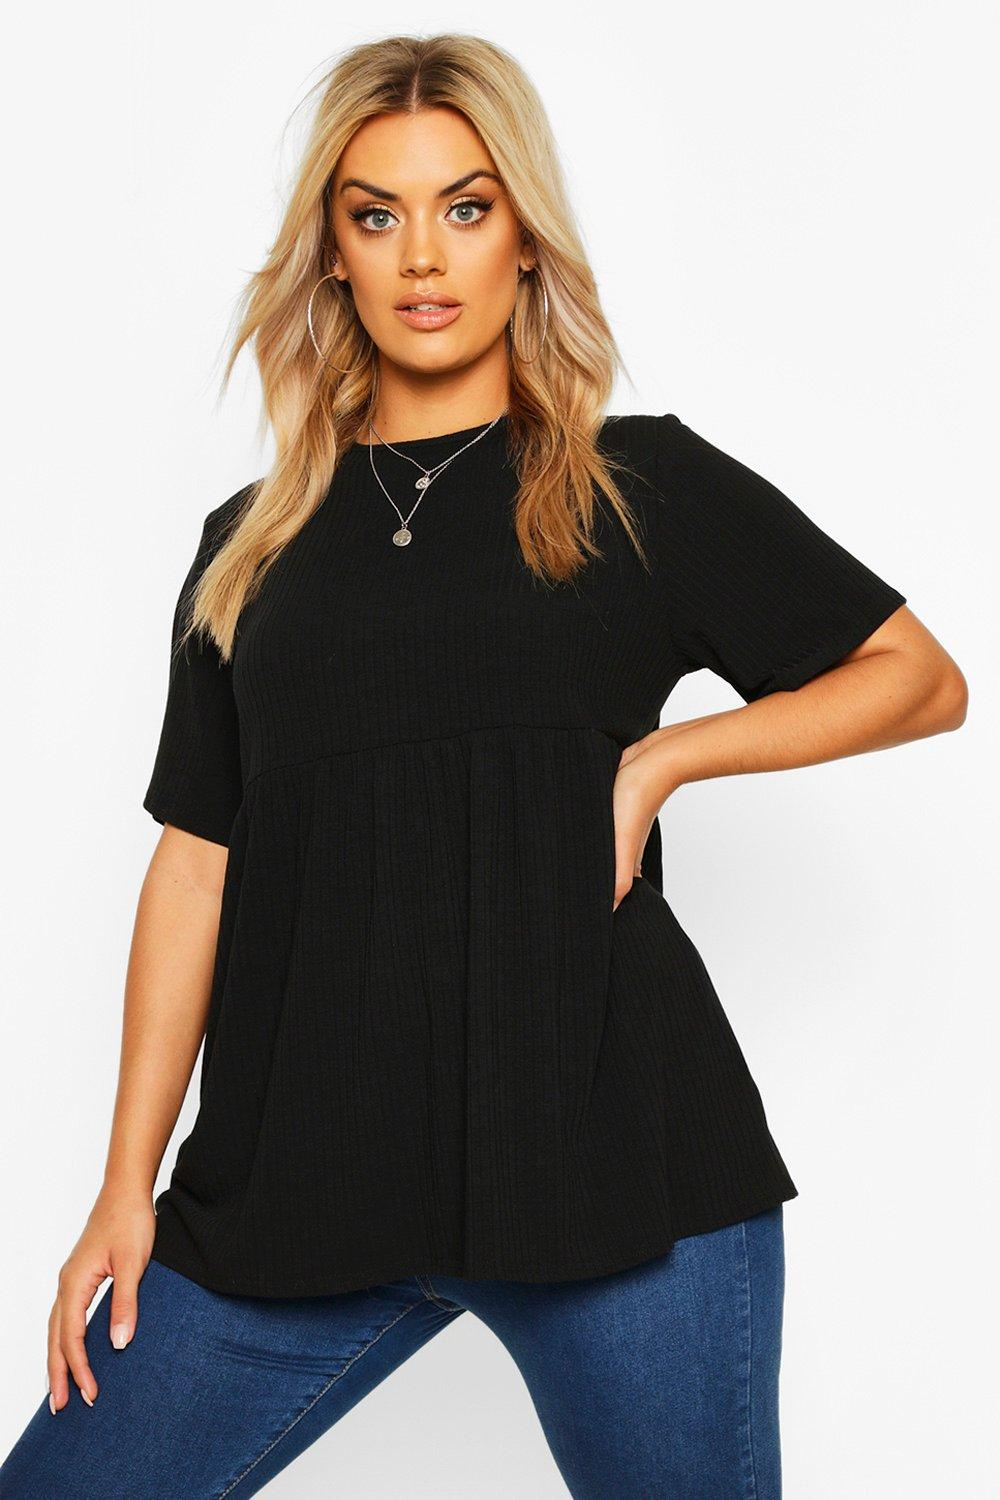 Womens Plus Rib Knitted Frill Hem Smock Top - black - 54, Black - Boohoo.com